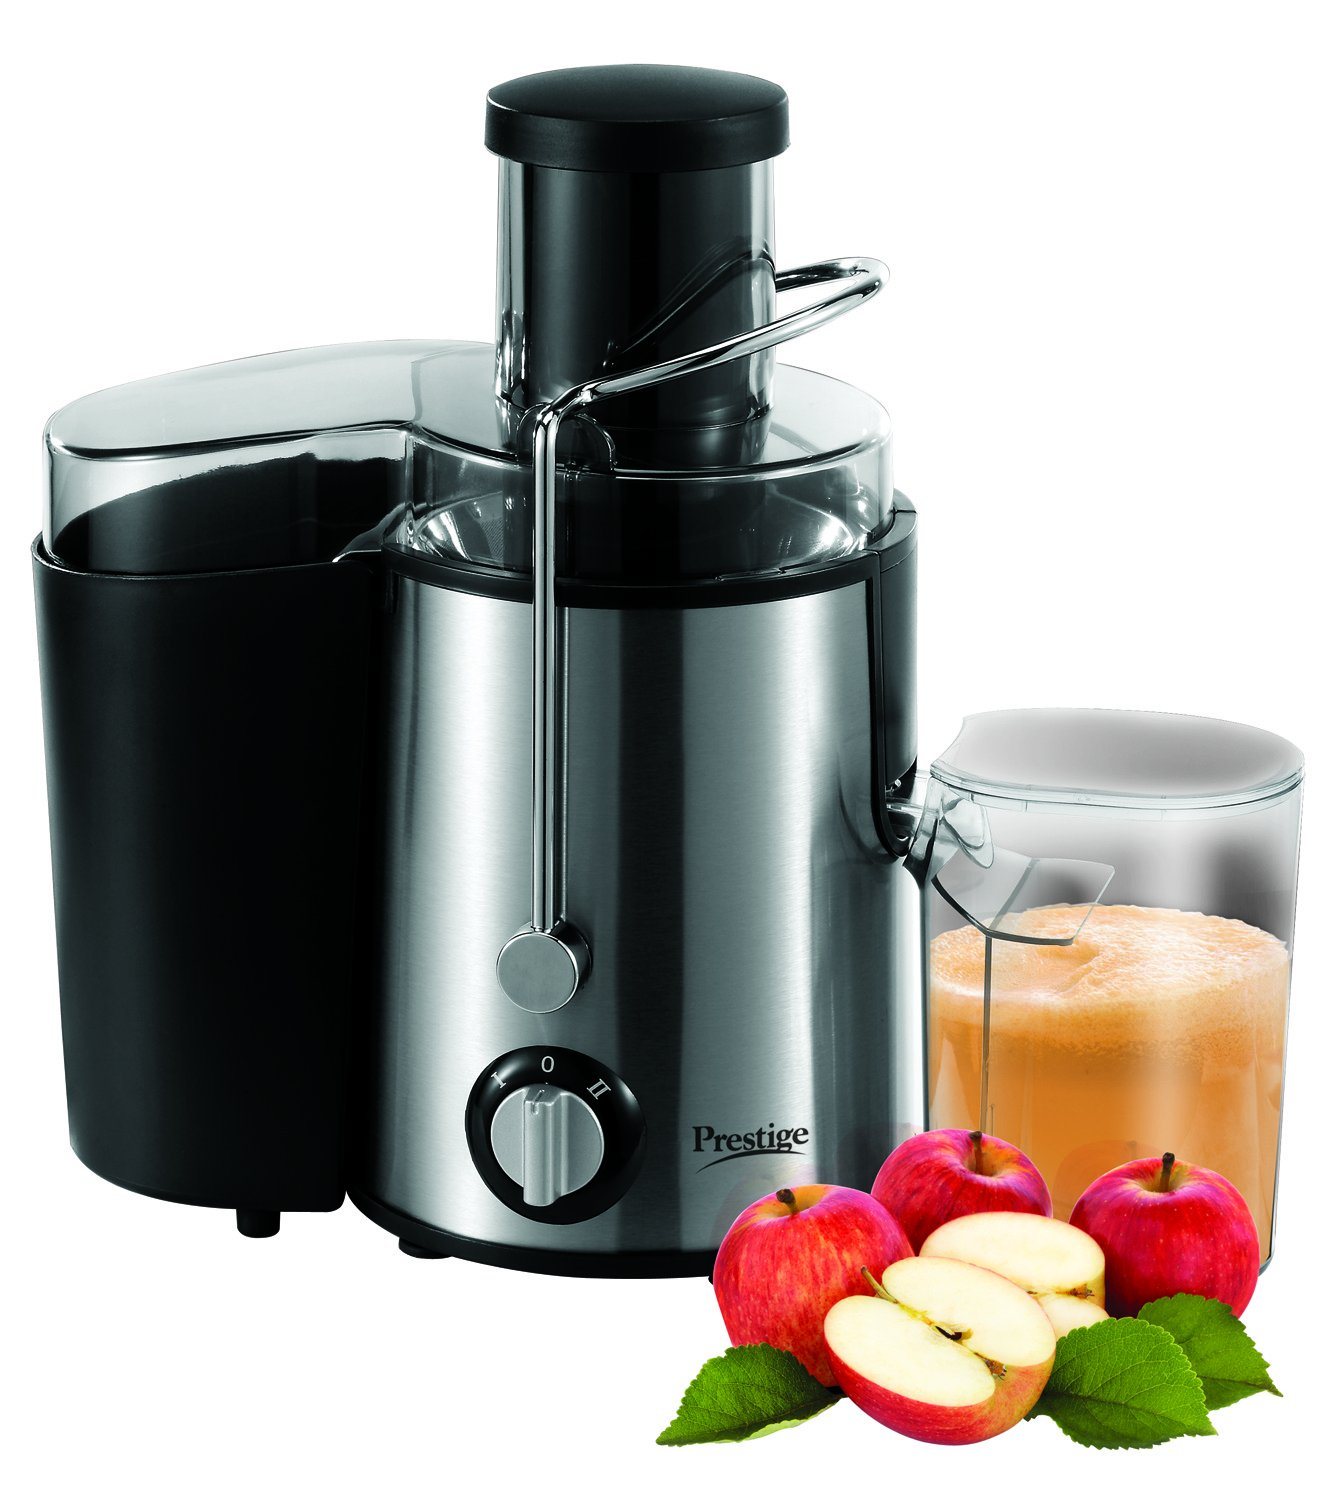 Slow Juicer Prestige : Best Juicers in India 2018 - Reviews And Comparisons